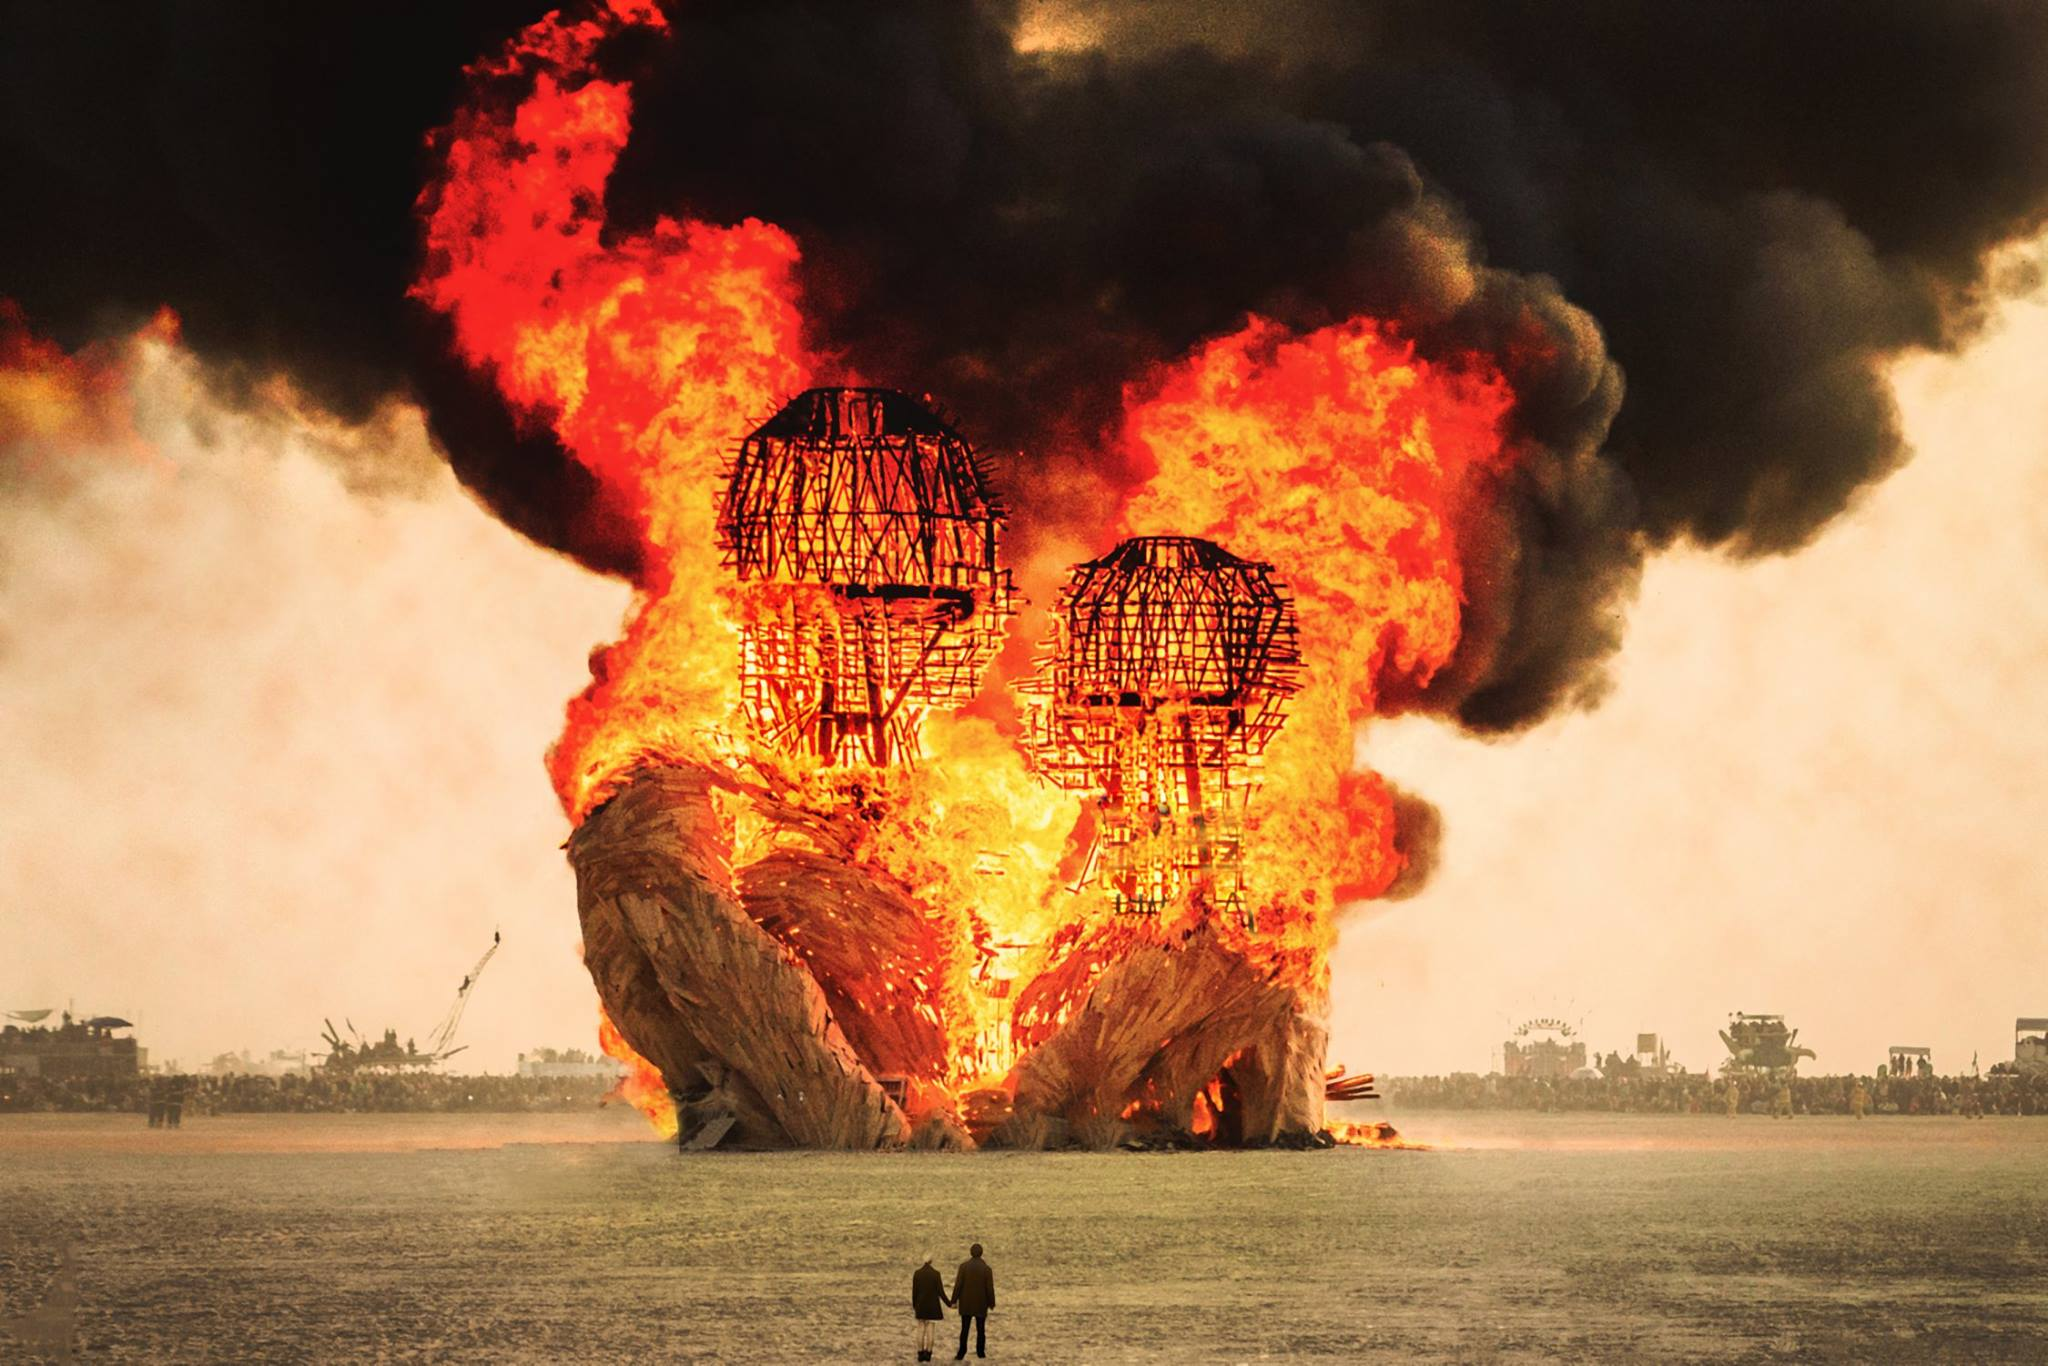 Victor Habchy - Burning Man